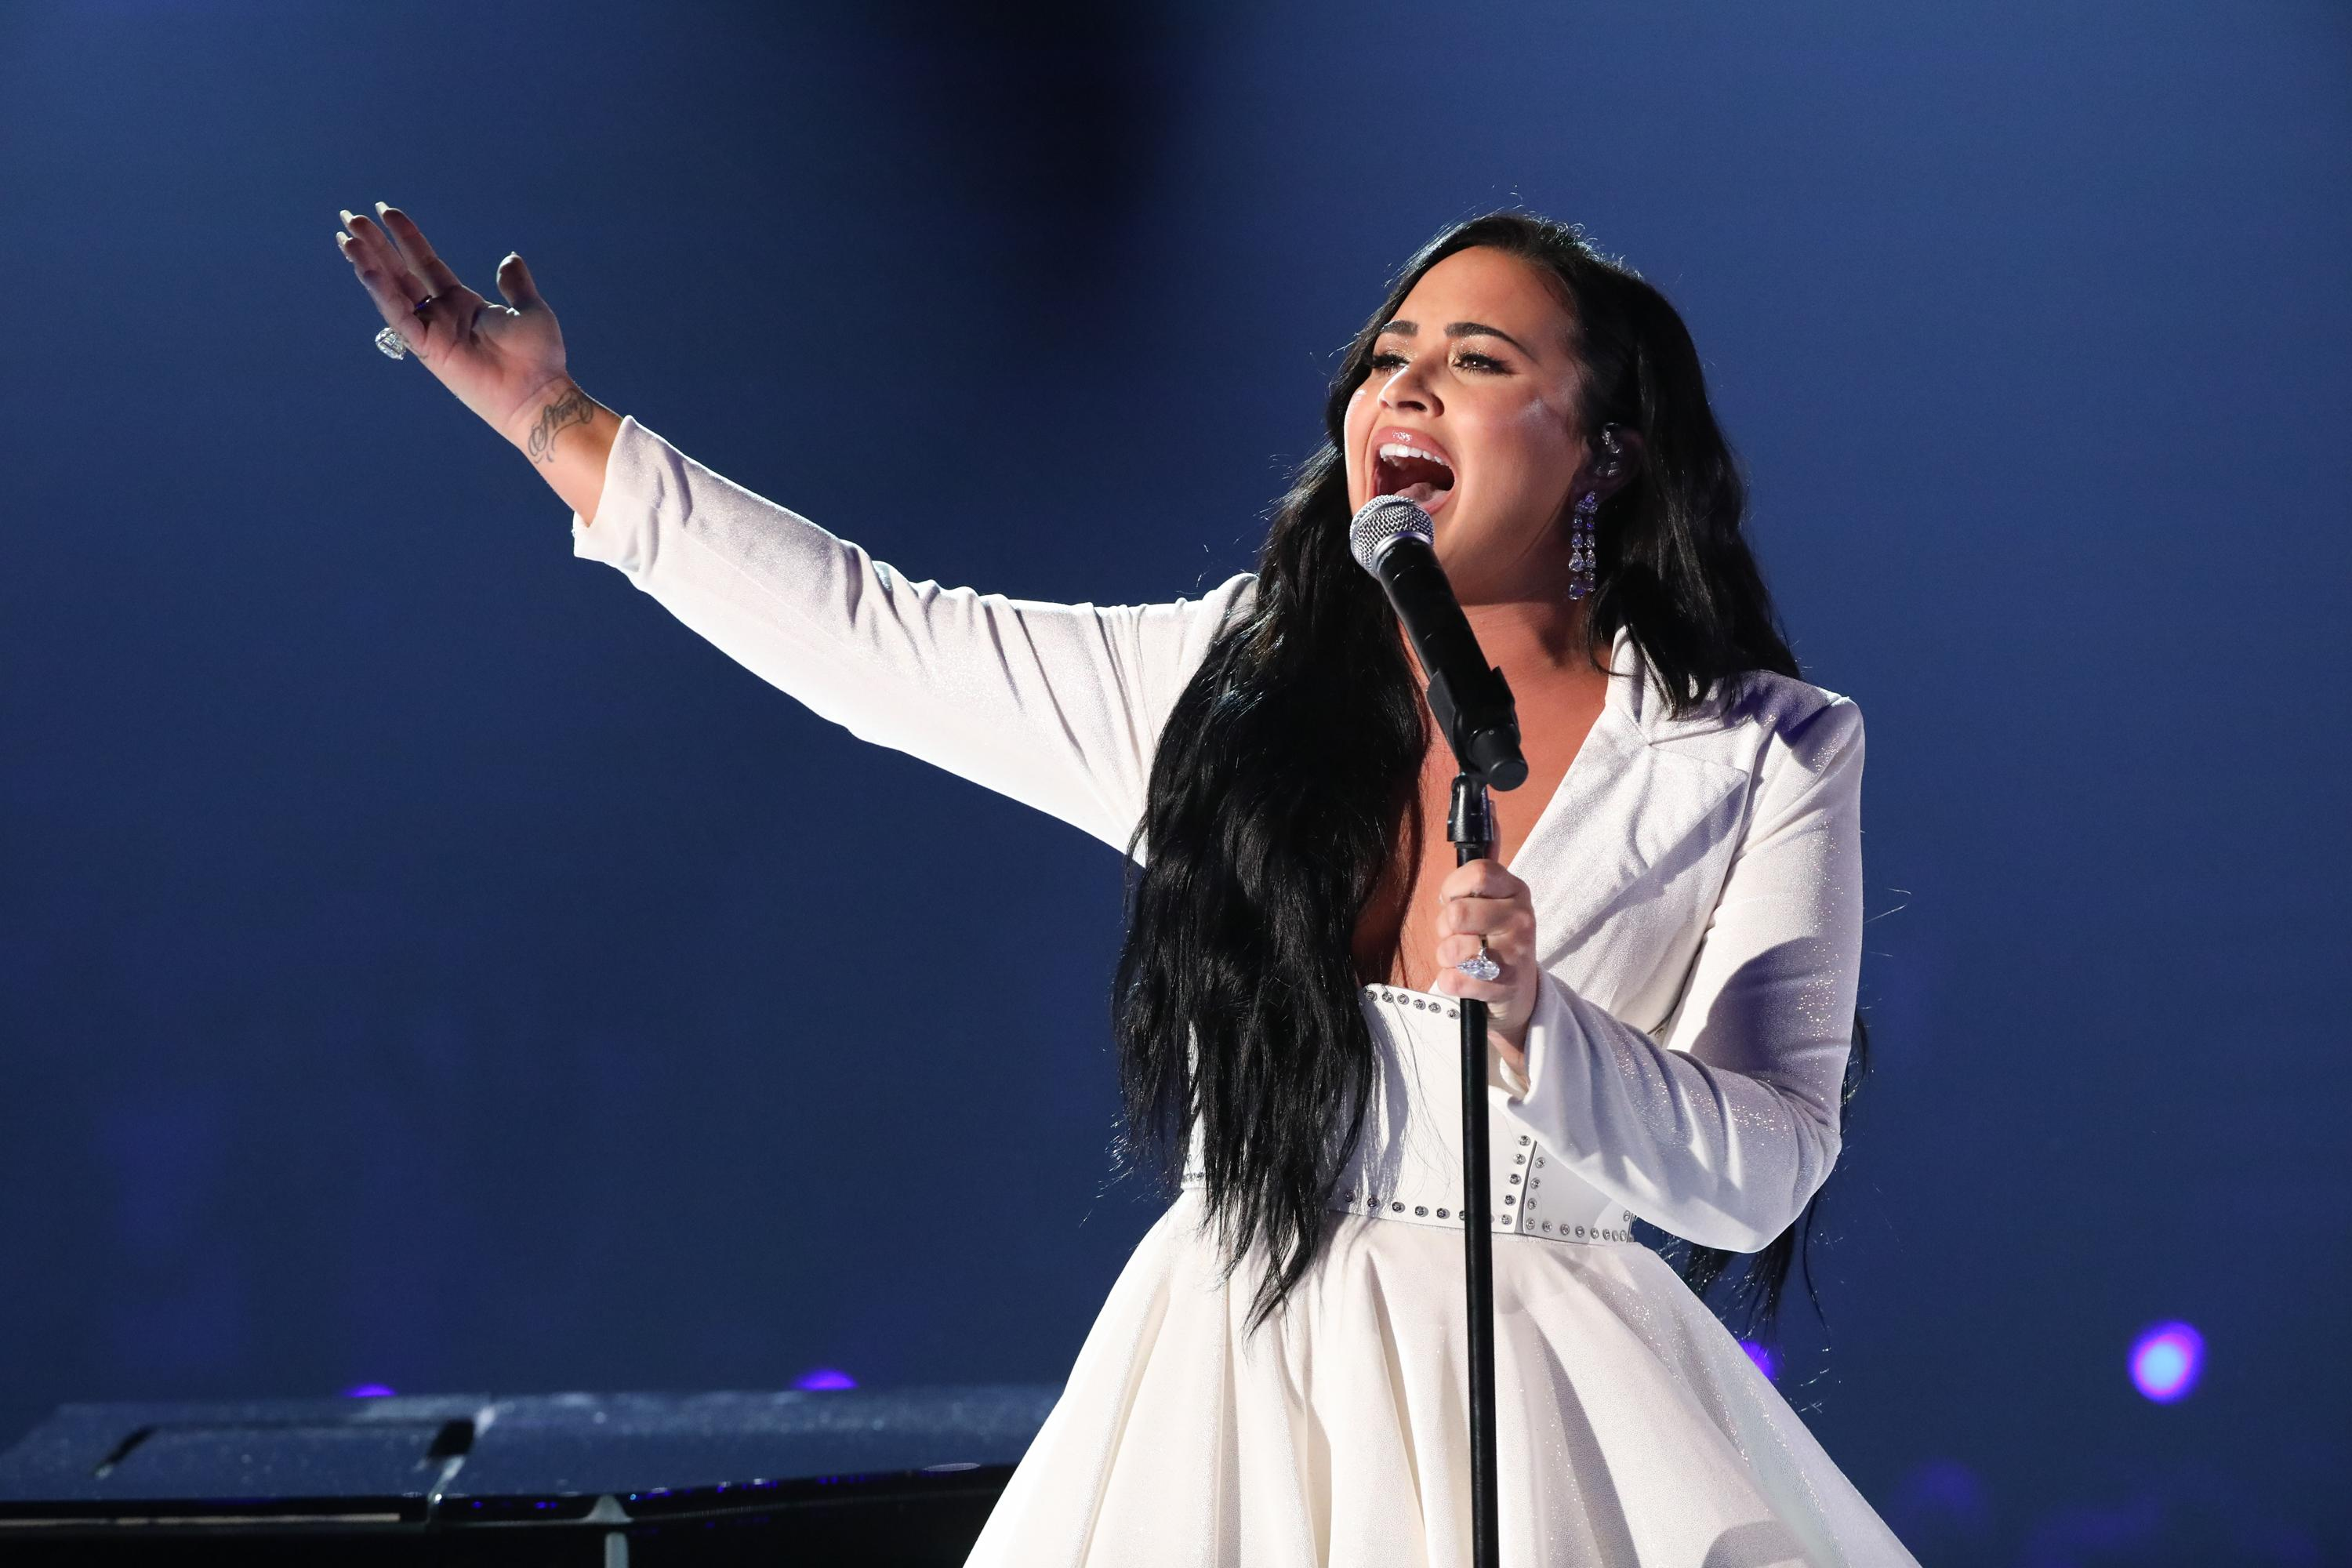 LOS ANGELES - JANUARY 26: Demi Lovato performs at THE 62ND ANNUAL GRAMMY® AWARDS, broadcast live from the STAPLES Center in Los Angeles, Sunday, January 26, 2020 (8:00-11:30 PM, live ET/5:00-8:30 PM, live PT) on the CBS Television Network. (Photo by Monty Brinton/CBS via Getty Images)